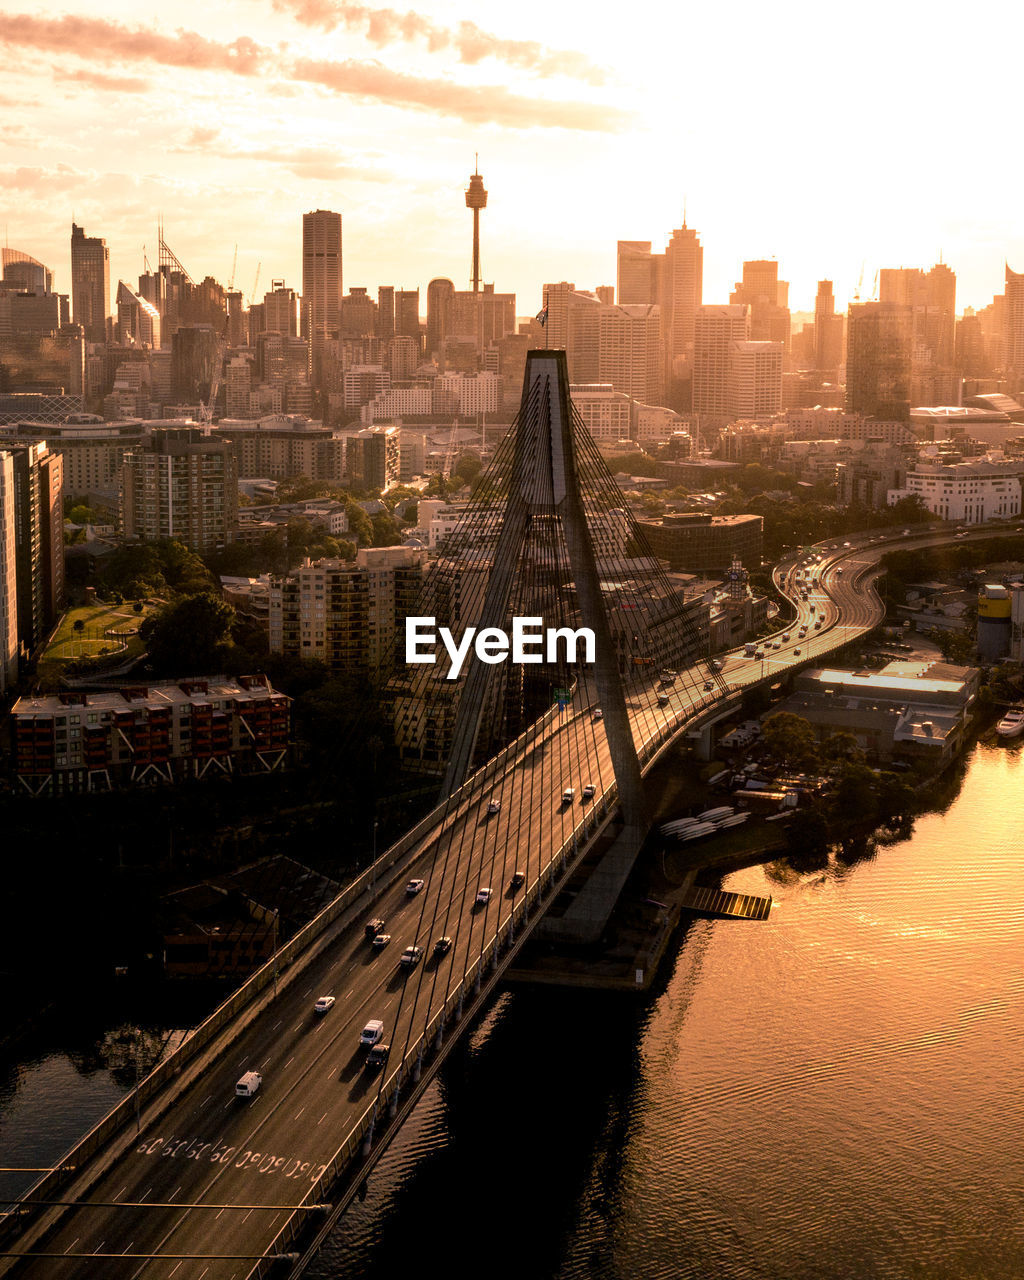 Aerial view of bridge over river against buildings in city during sunset